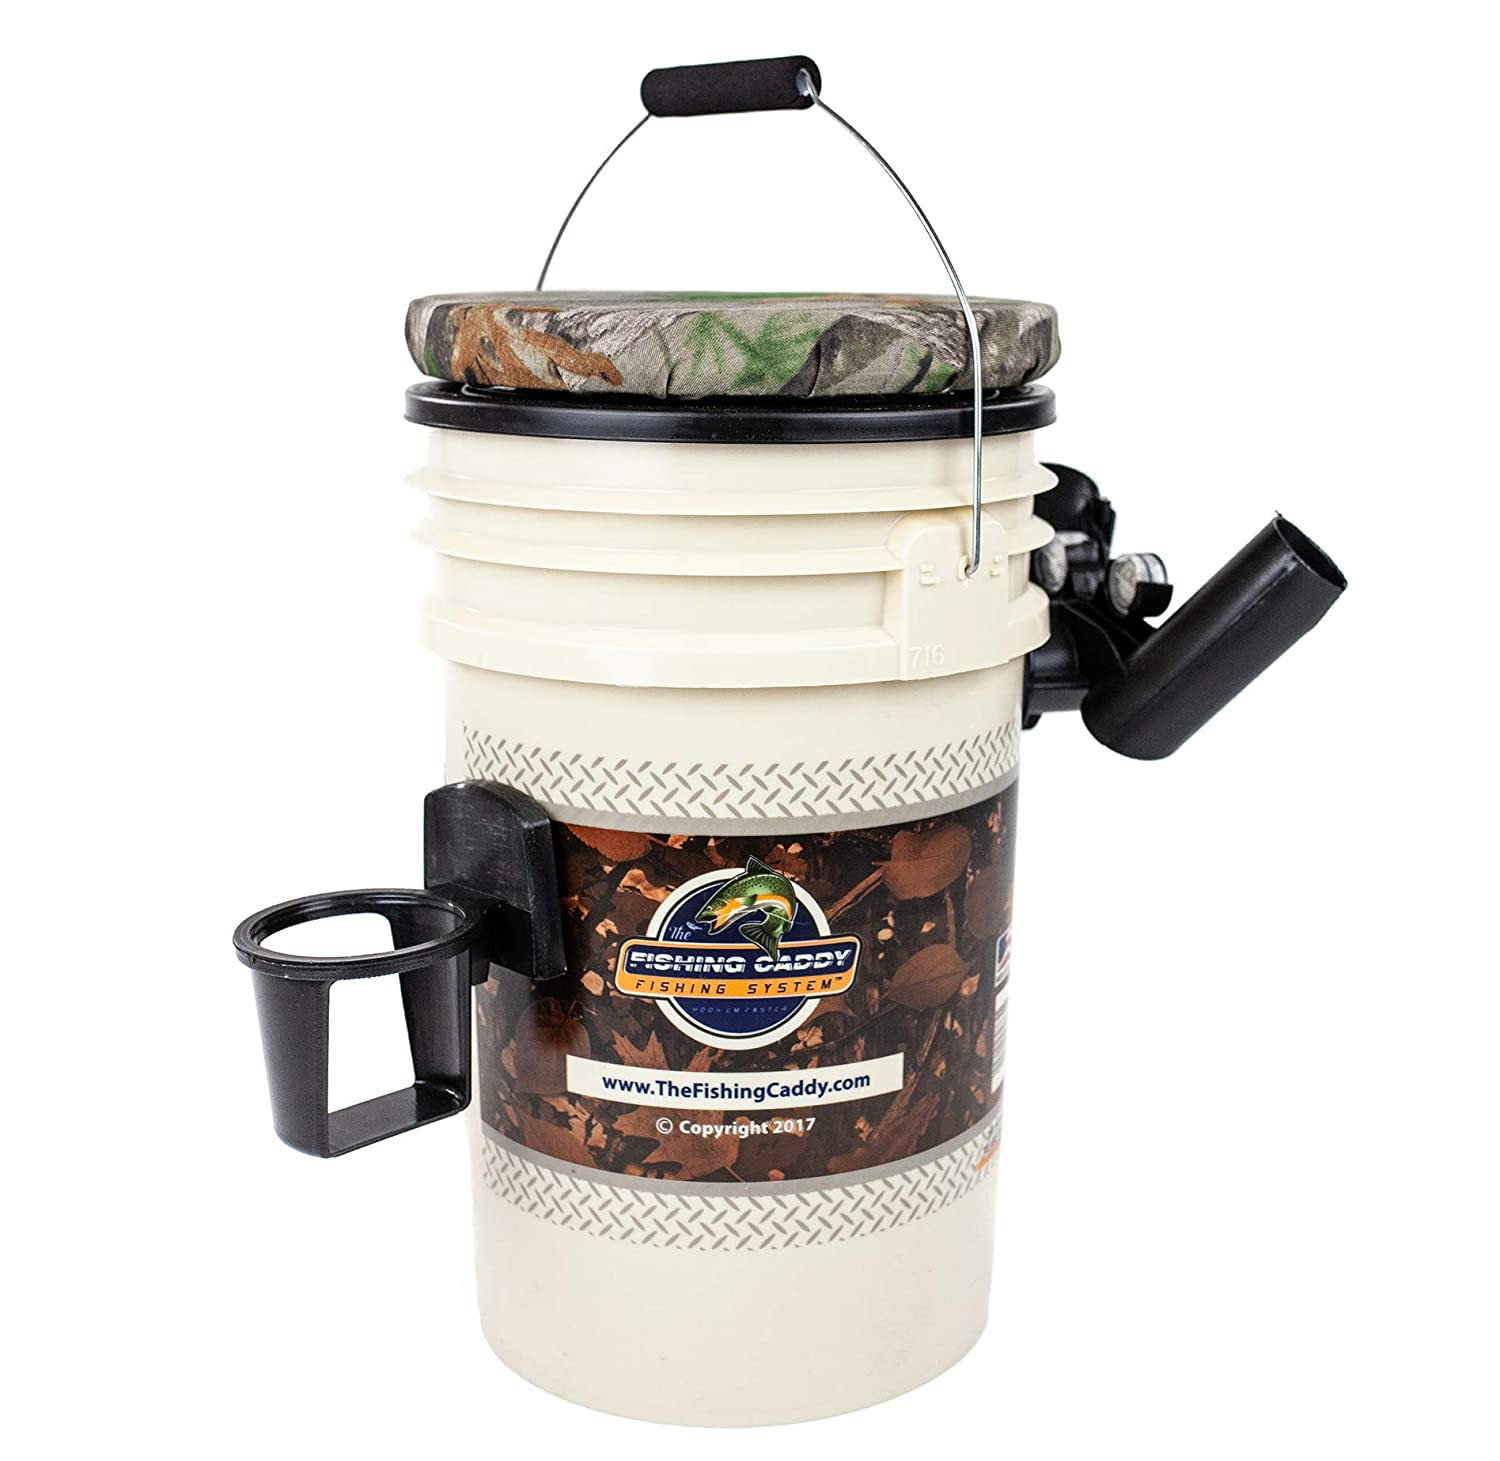 Fisherman Gift Cup Holder or Beer Holder /& LED Waterproof Light for Night Fishing THE FISHING CADDY Dual Fishing Rod Holder Fishing Bucket Storage or Bait Holder w//Swivel Padded Seat